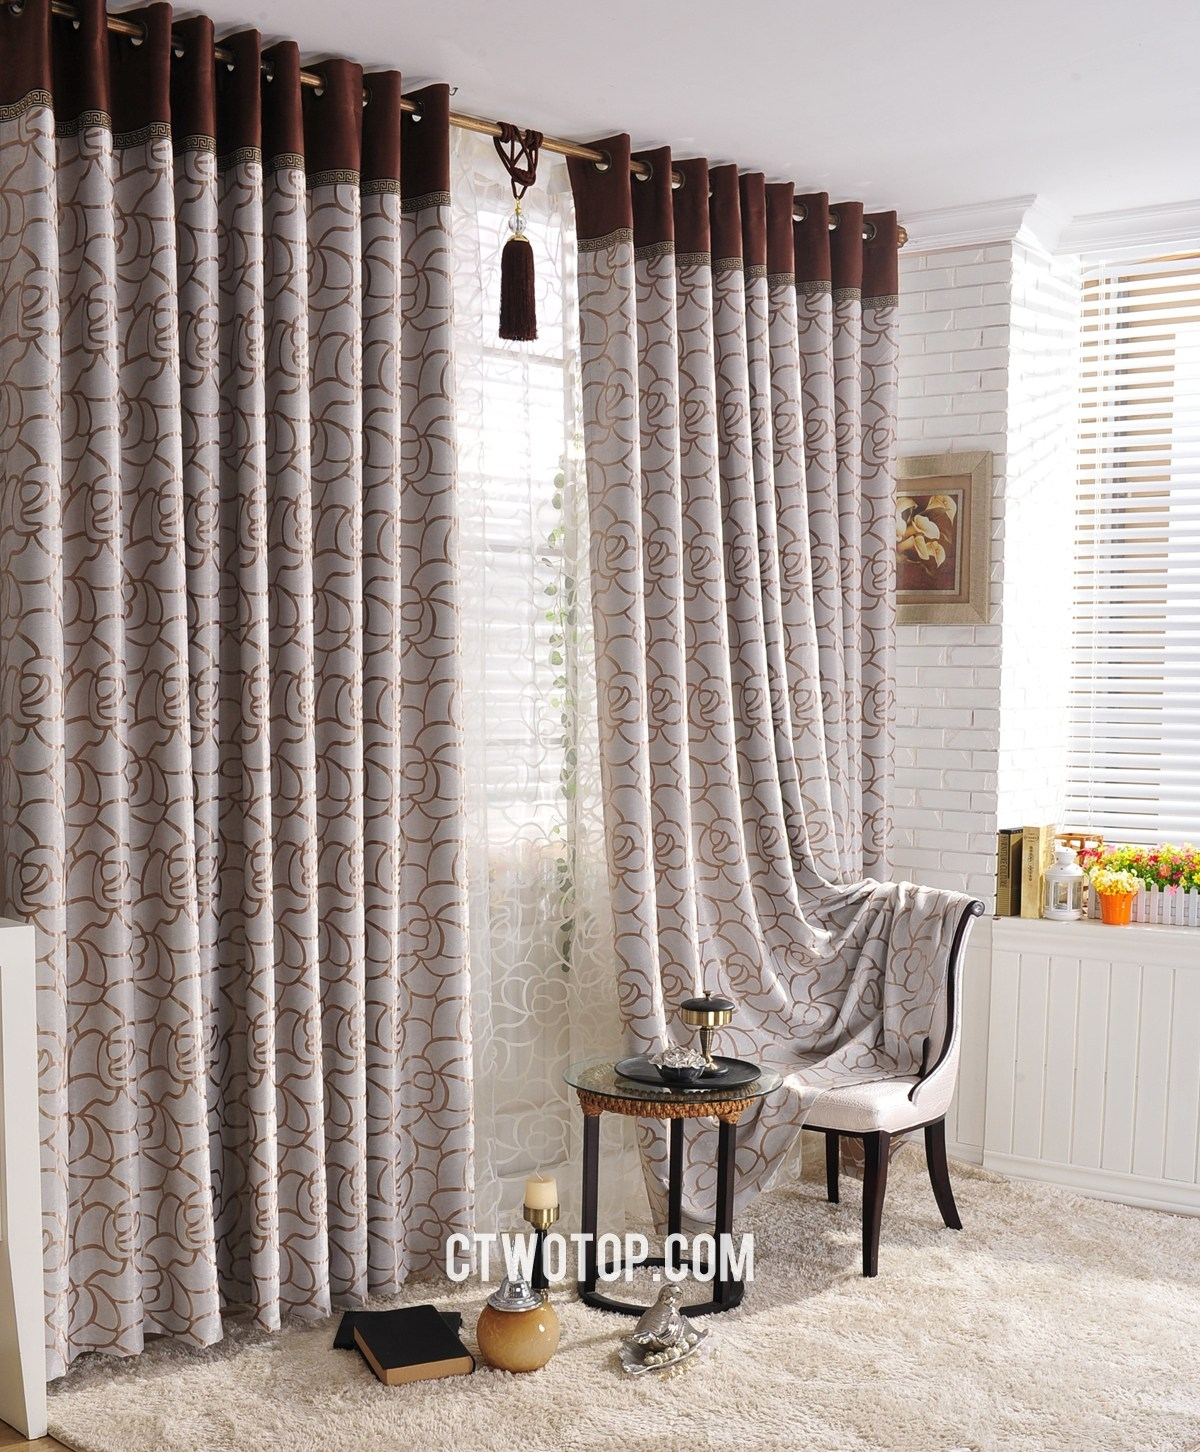 Curtain Plum Leaf Shab Chic Overstock Blackout Curtains Regarding Patterned Blackout Curtains (View 7 of 25)